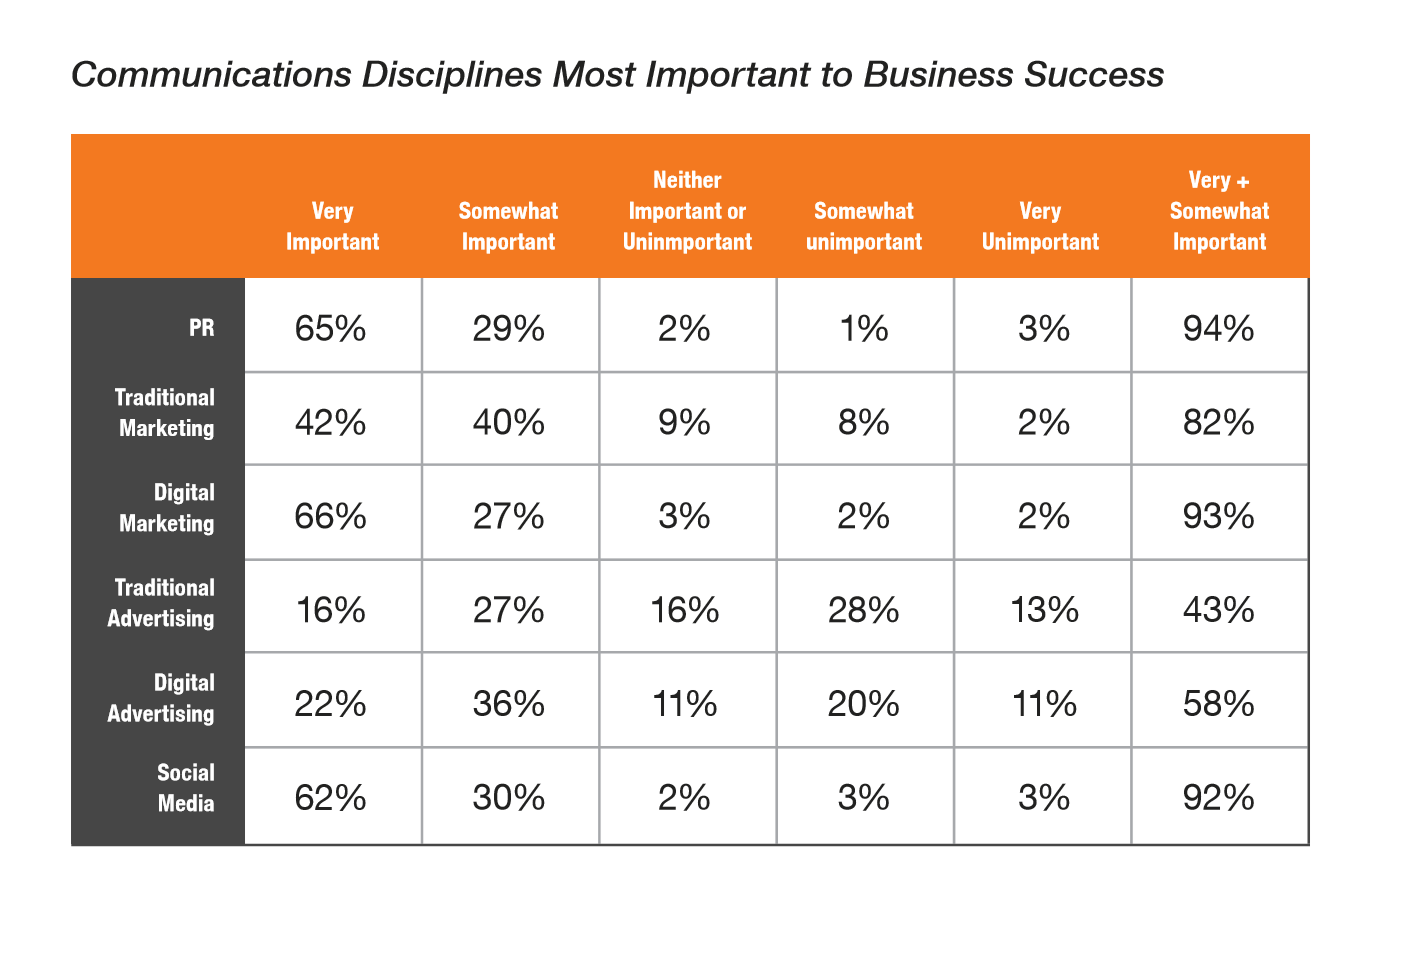 Communications Disciplines Most Important To Business Success